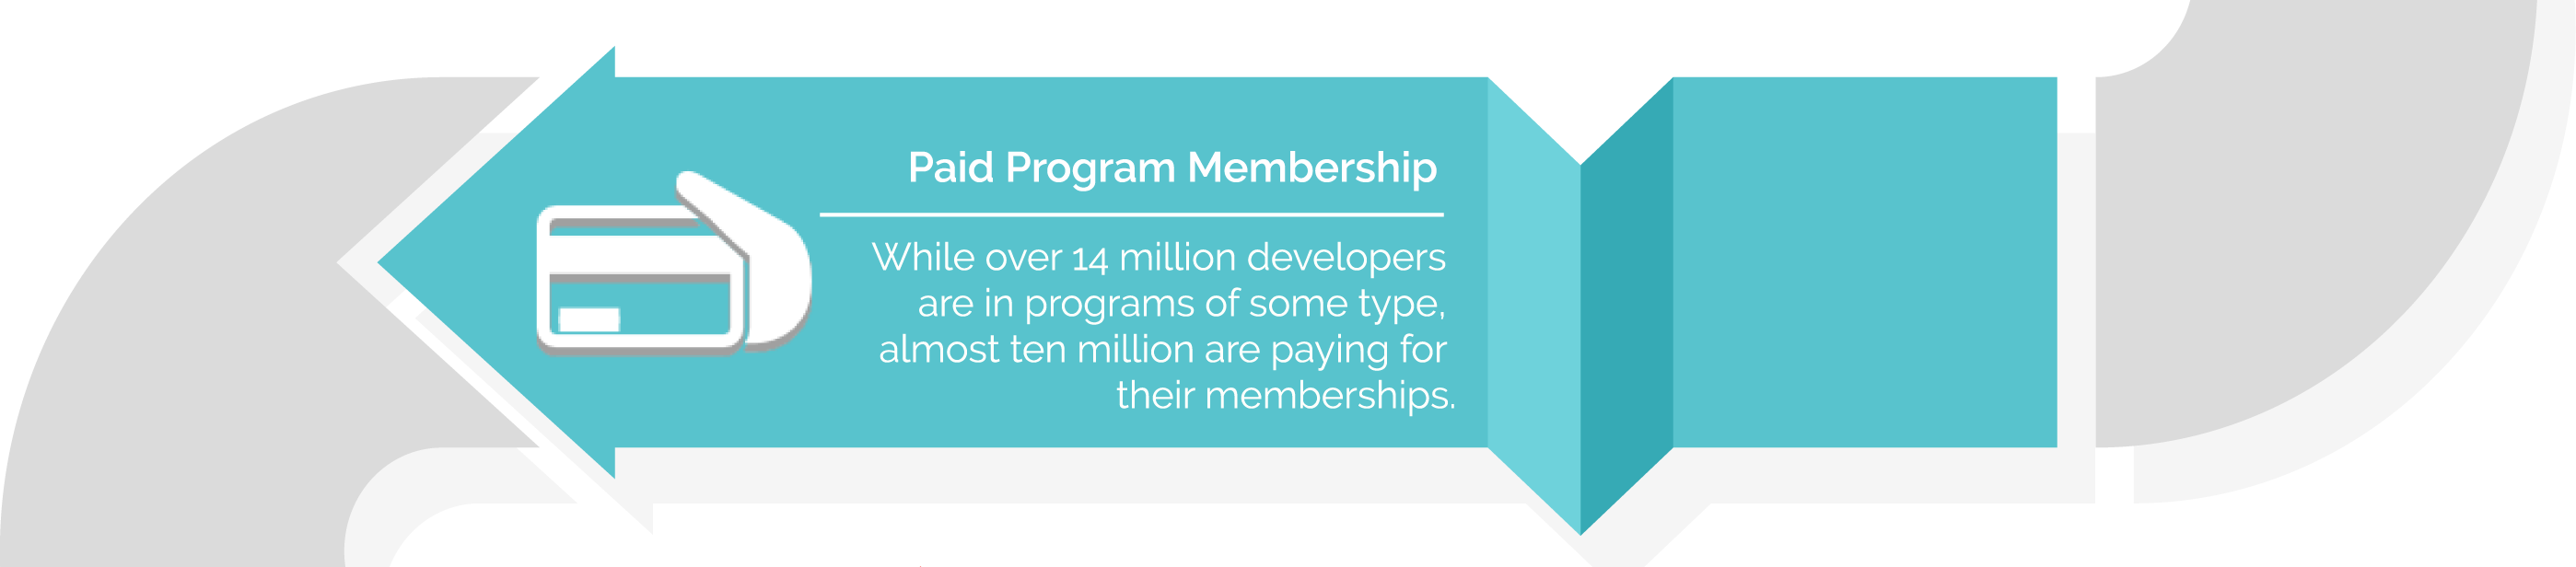 While over 14 million developers are all programs of some type, almost ten million are paying for their membership.